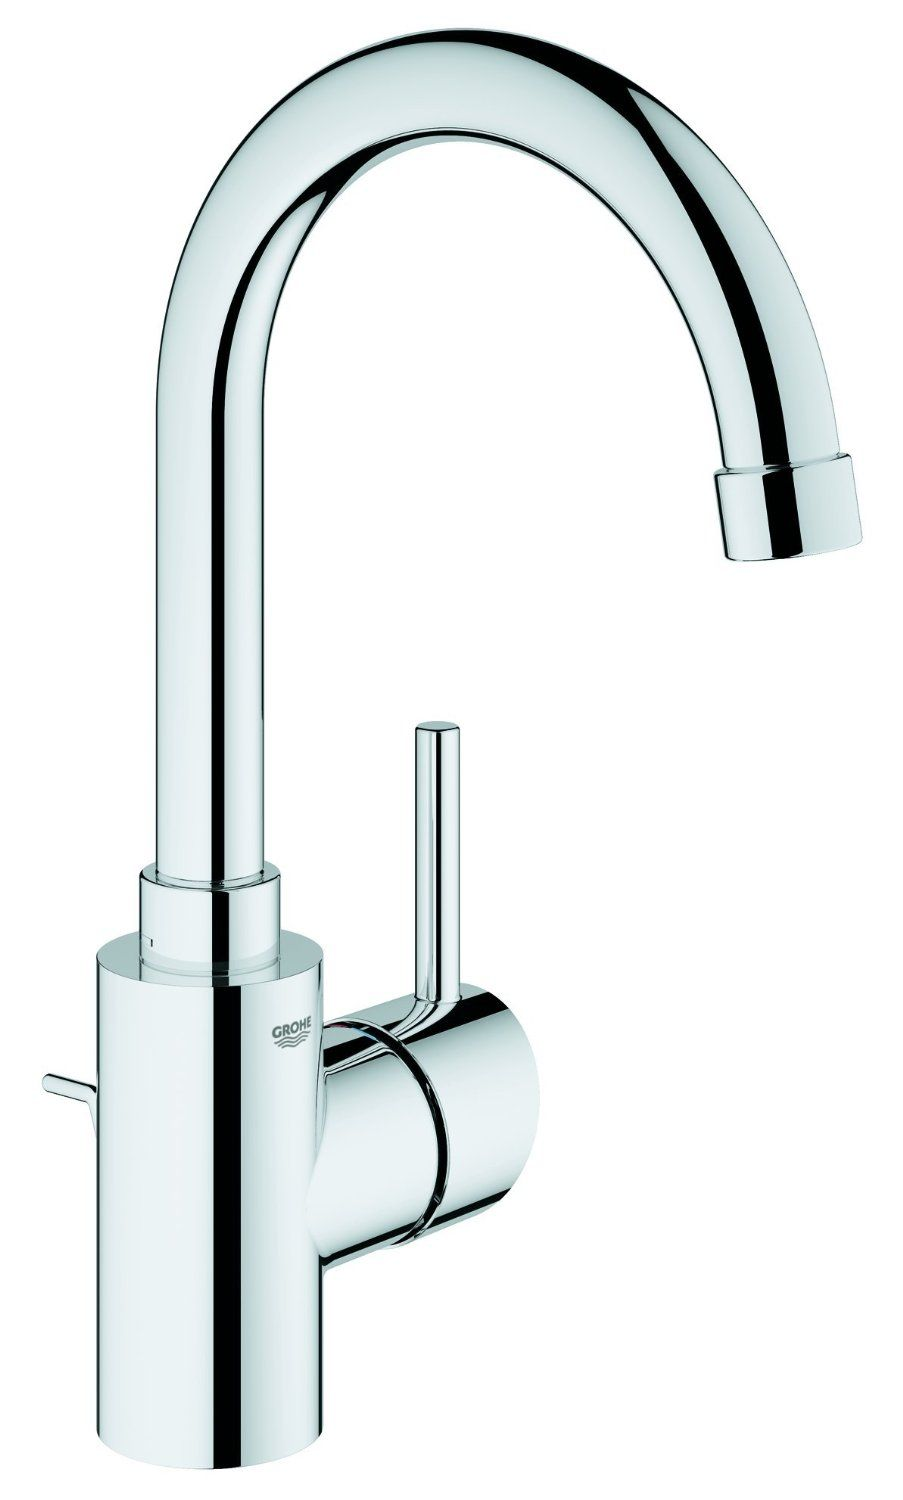 grohe concetto basin mixer high spout with pop up waste lp amazon